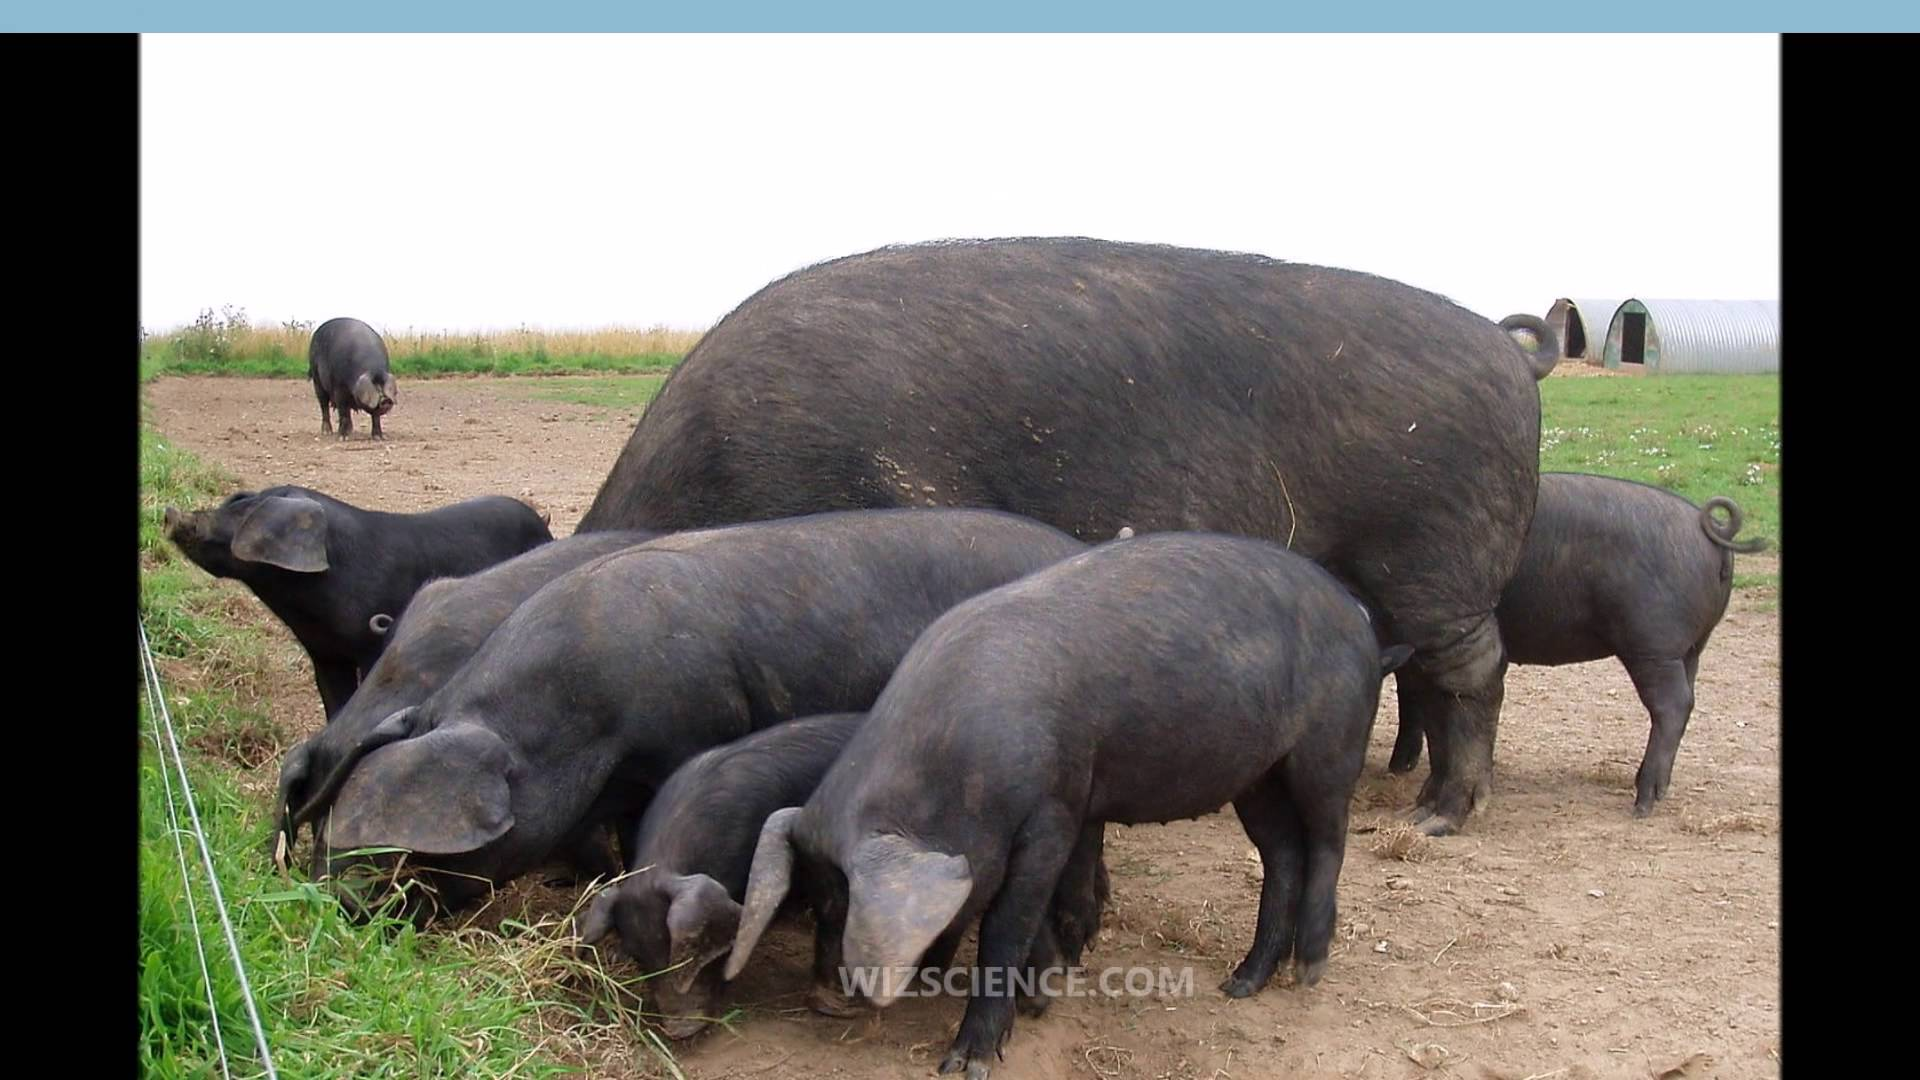 Large Black pig - Video Learning - WizScience.com - YouTube